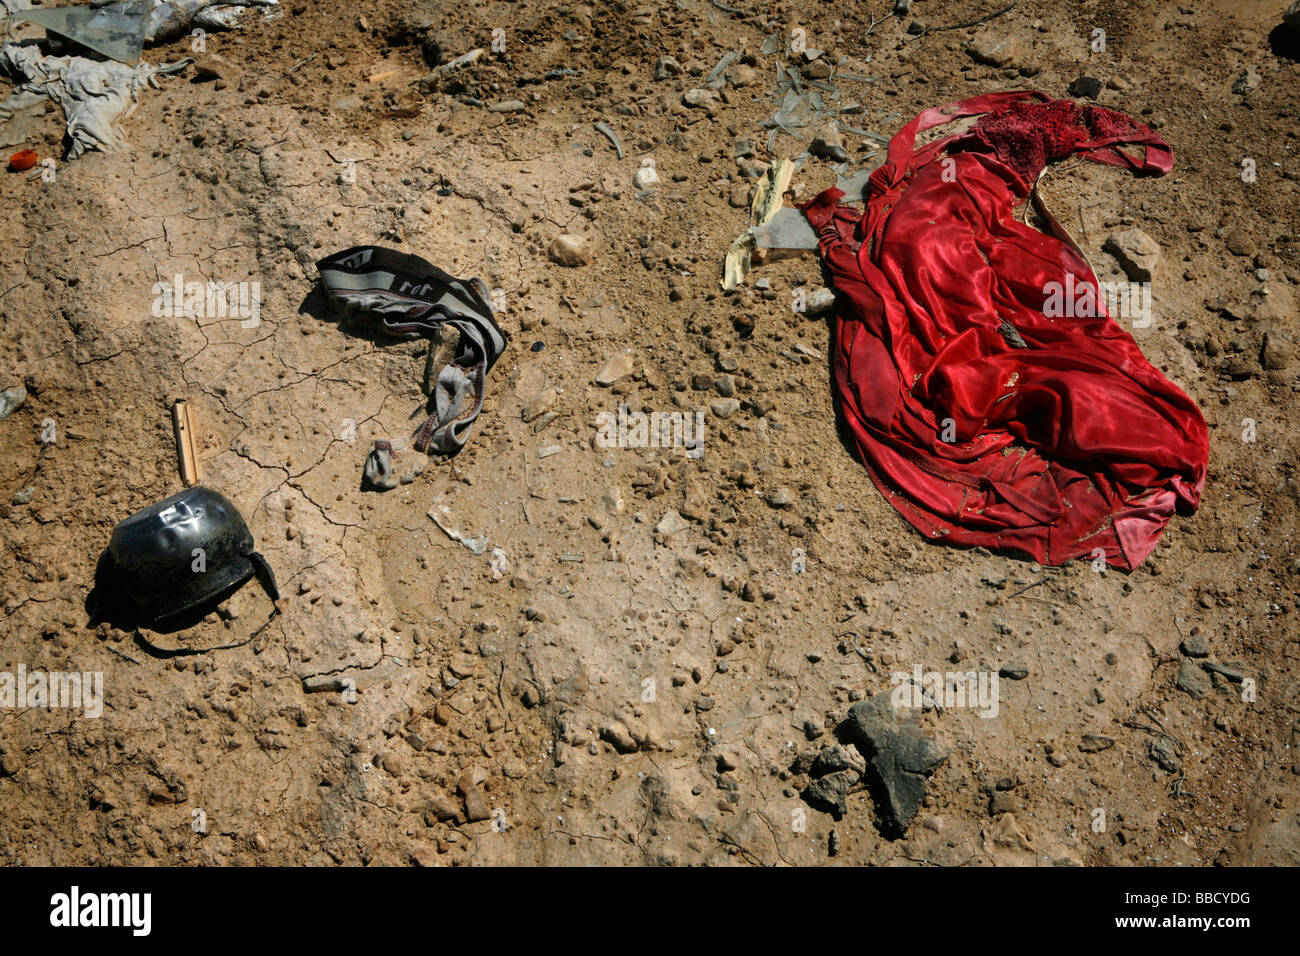 Possessions are left scattered on the ground after a house demolition in the village of Abdeh. Israel - Stock Image